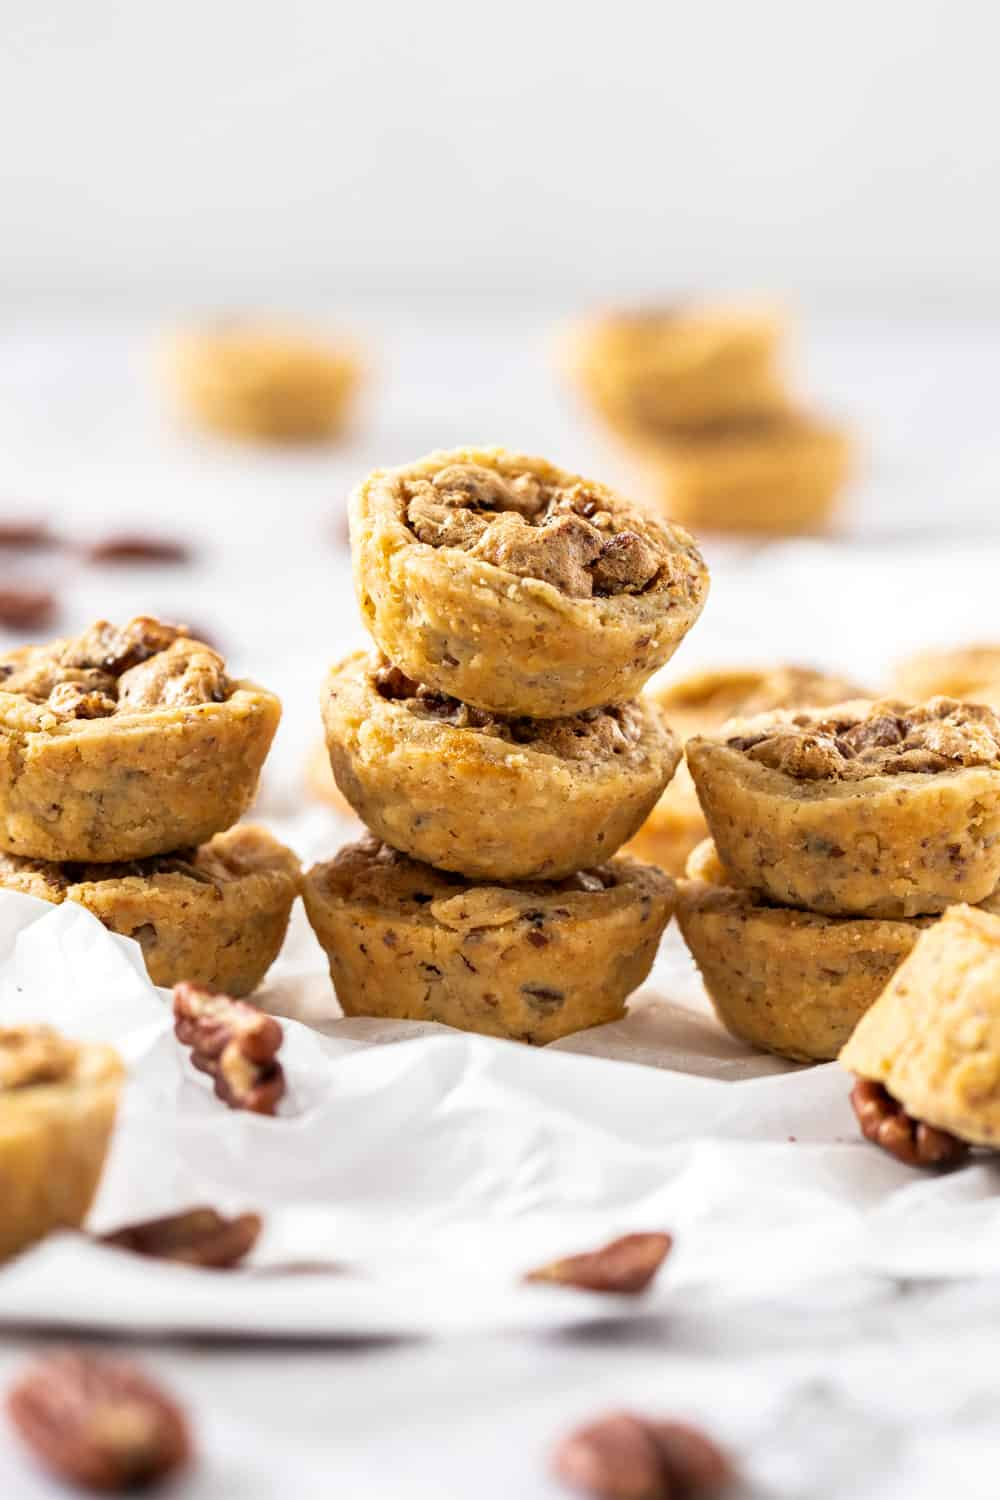 Small stacks of pecan tassies on a sheet of baking paper